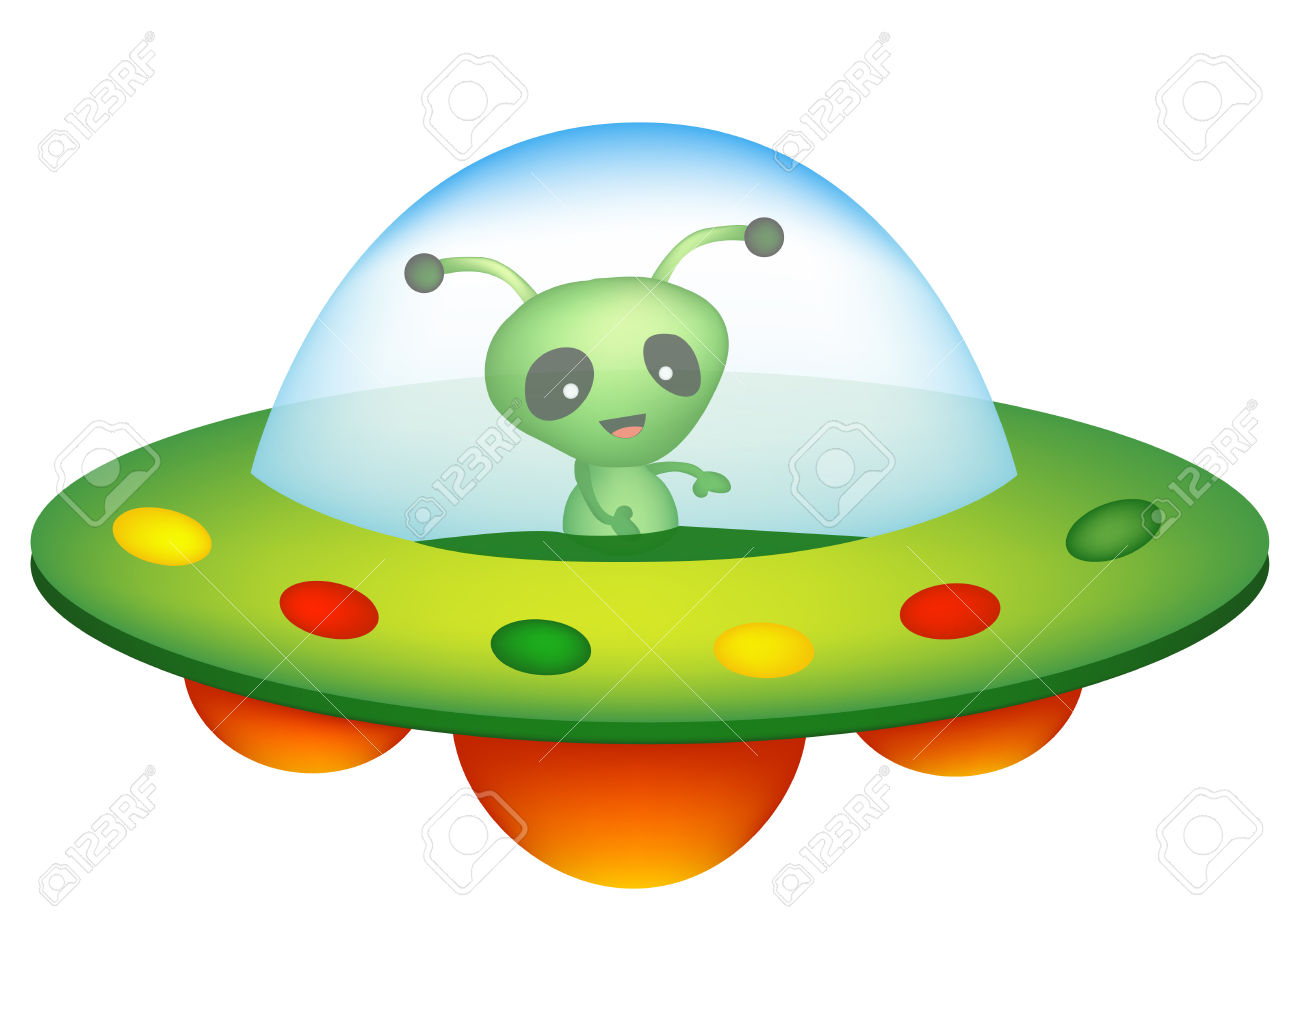 Illustration Of A Colorful Cartoon UFO / Unidentified Flying.